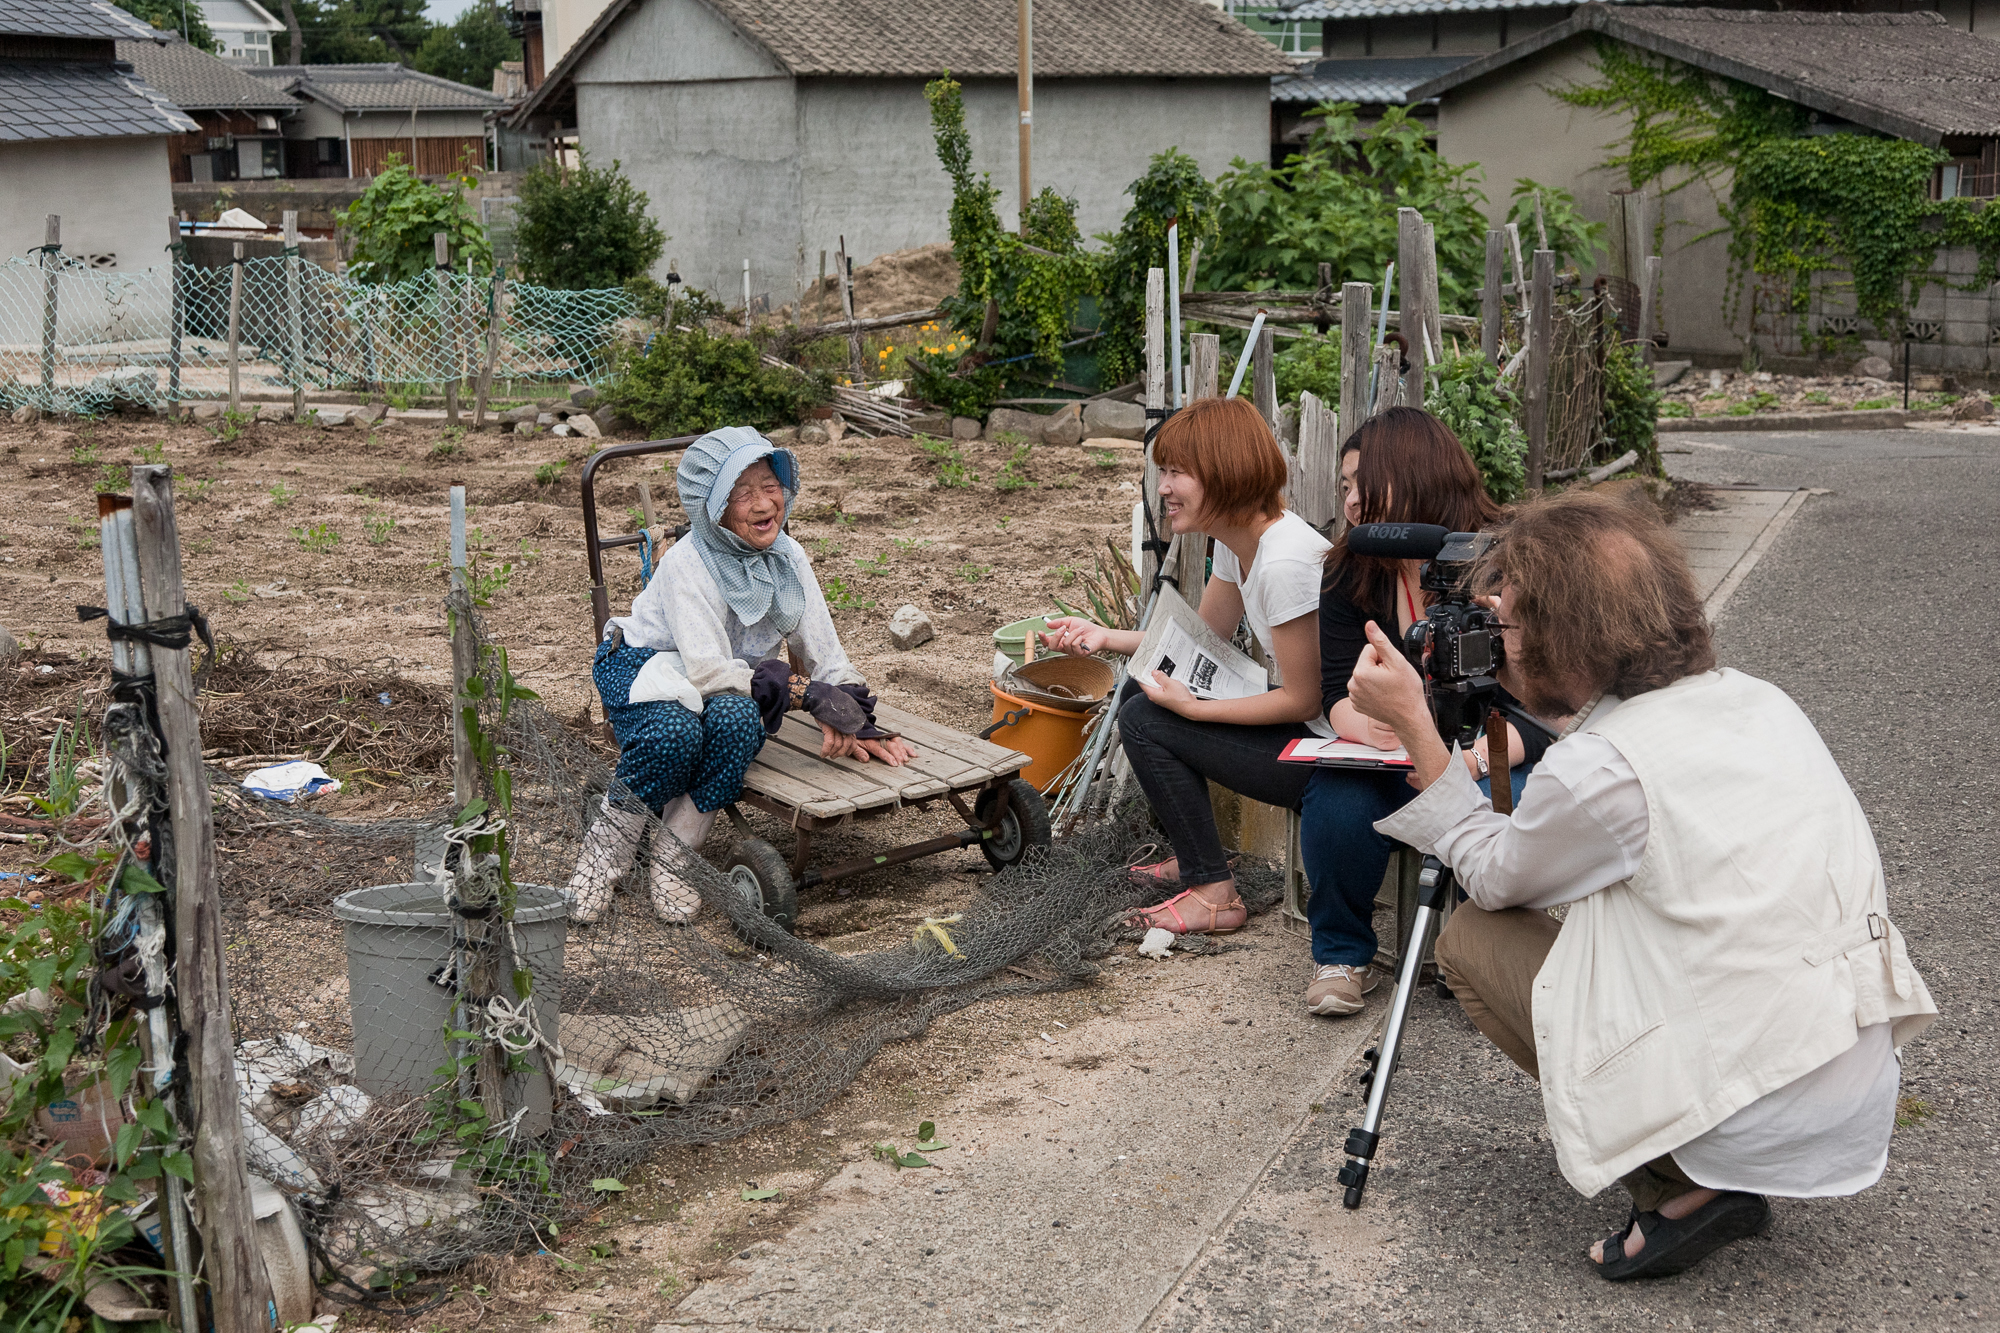 Interviewing Natsue Okada, who at 90-years old is one of Megijima's oldest farmers.